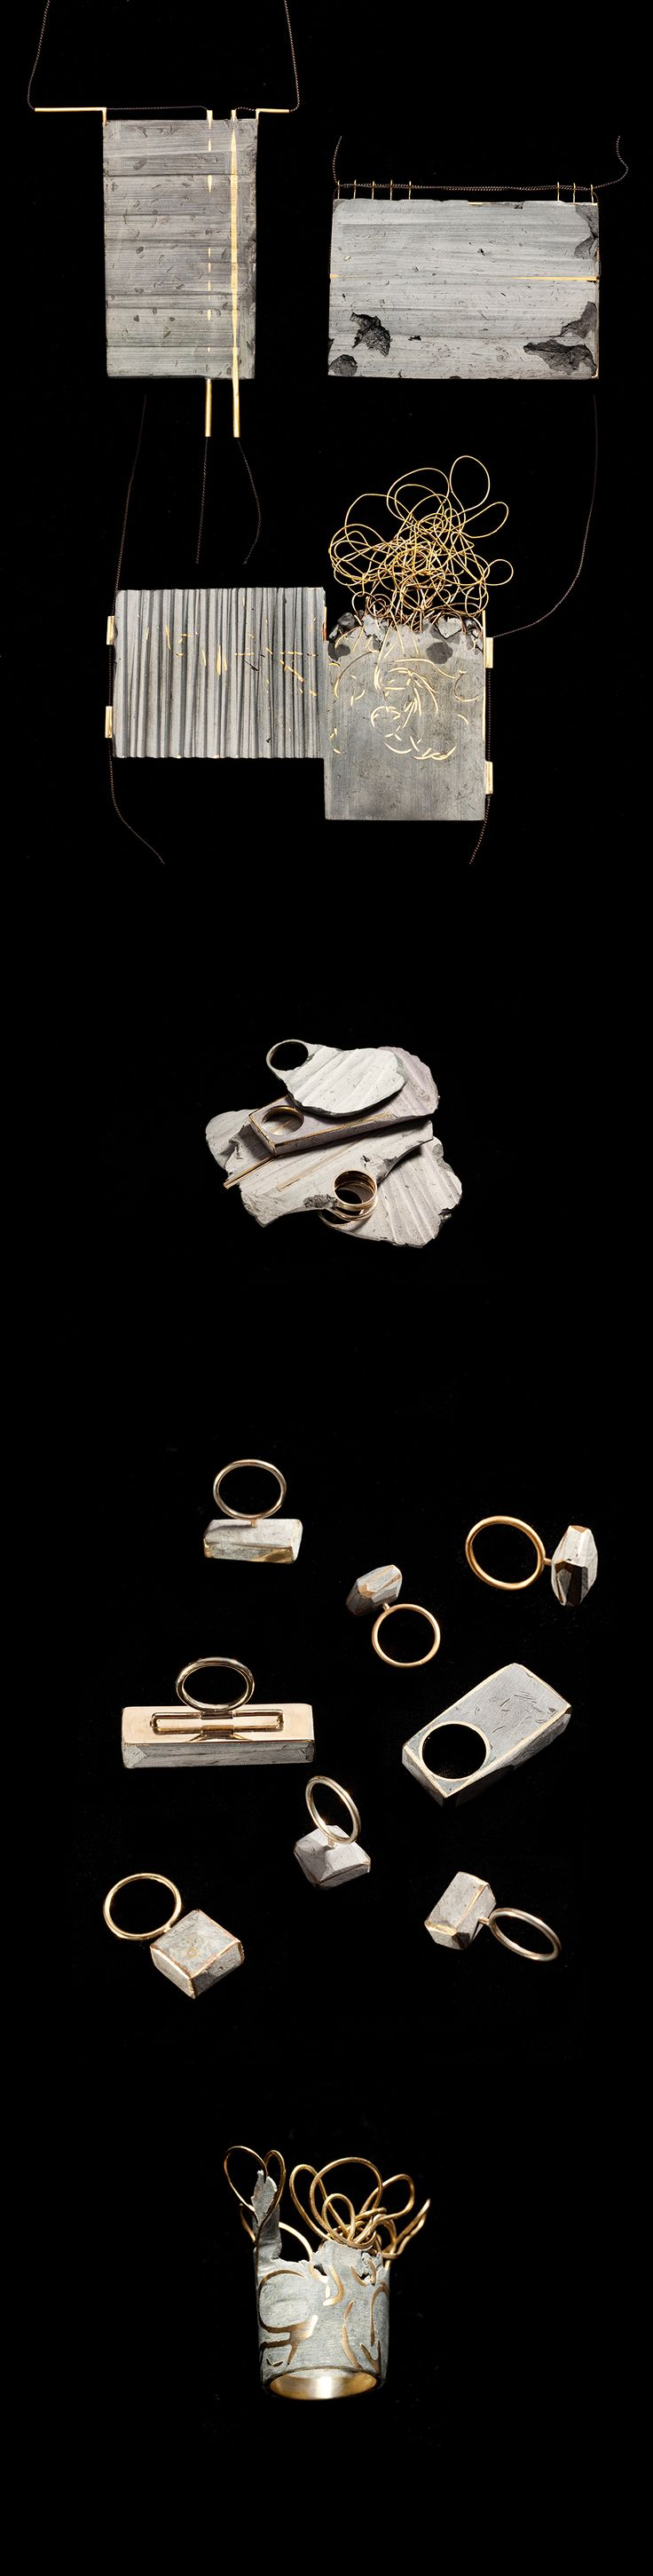 Noy Alon - Hand crafted pieces defining new boundaries between jewelry and objects, made of gold plated brass and polymer.